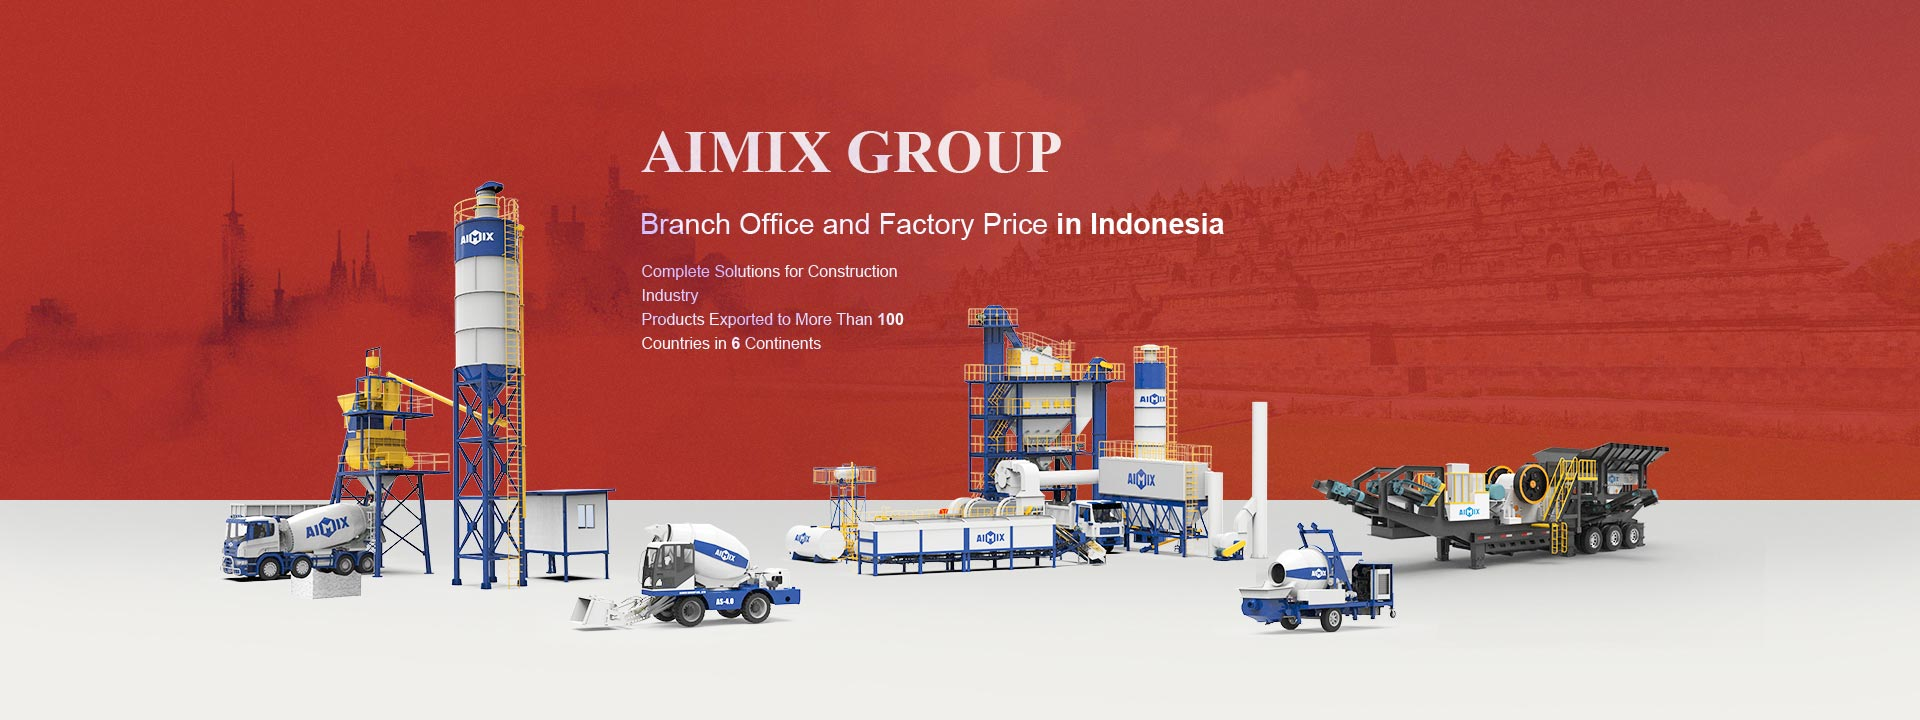 AIMIX Group in Indonesia